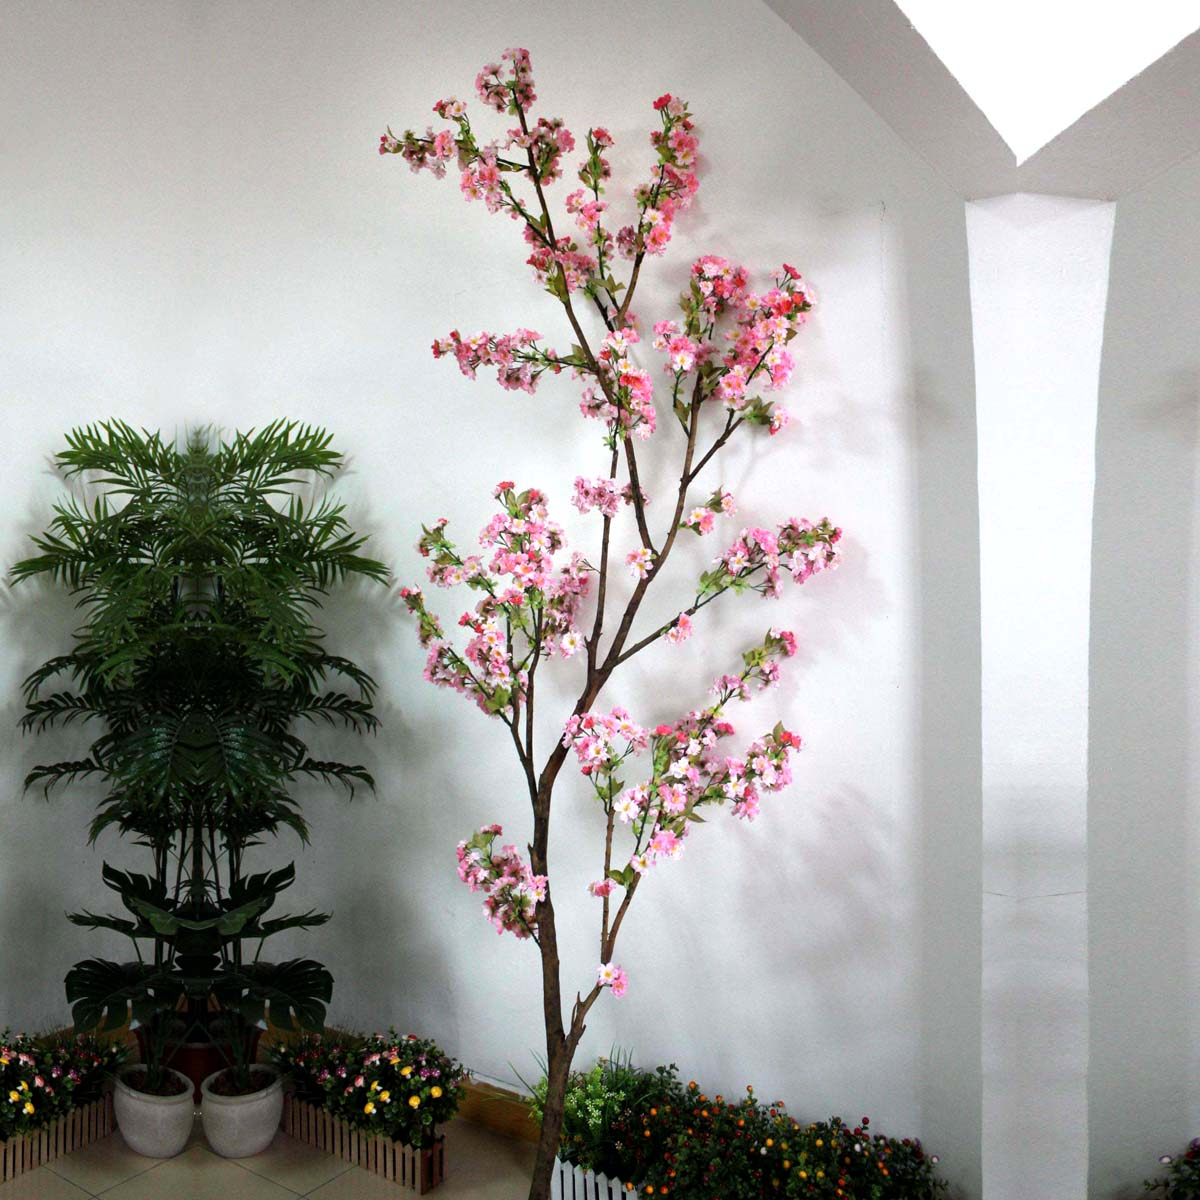 Gnw bls020 artificial cherry blossom tree branch for for Artificial cherries decoration